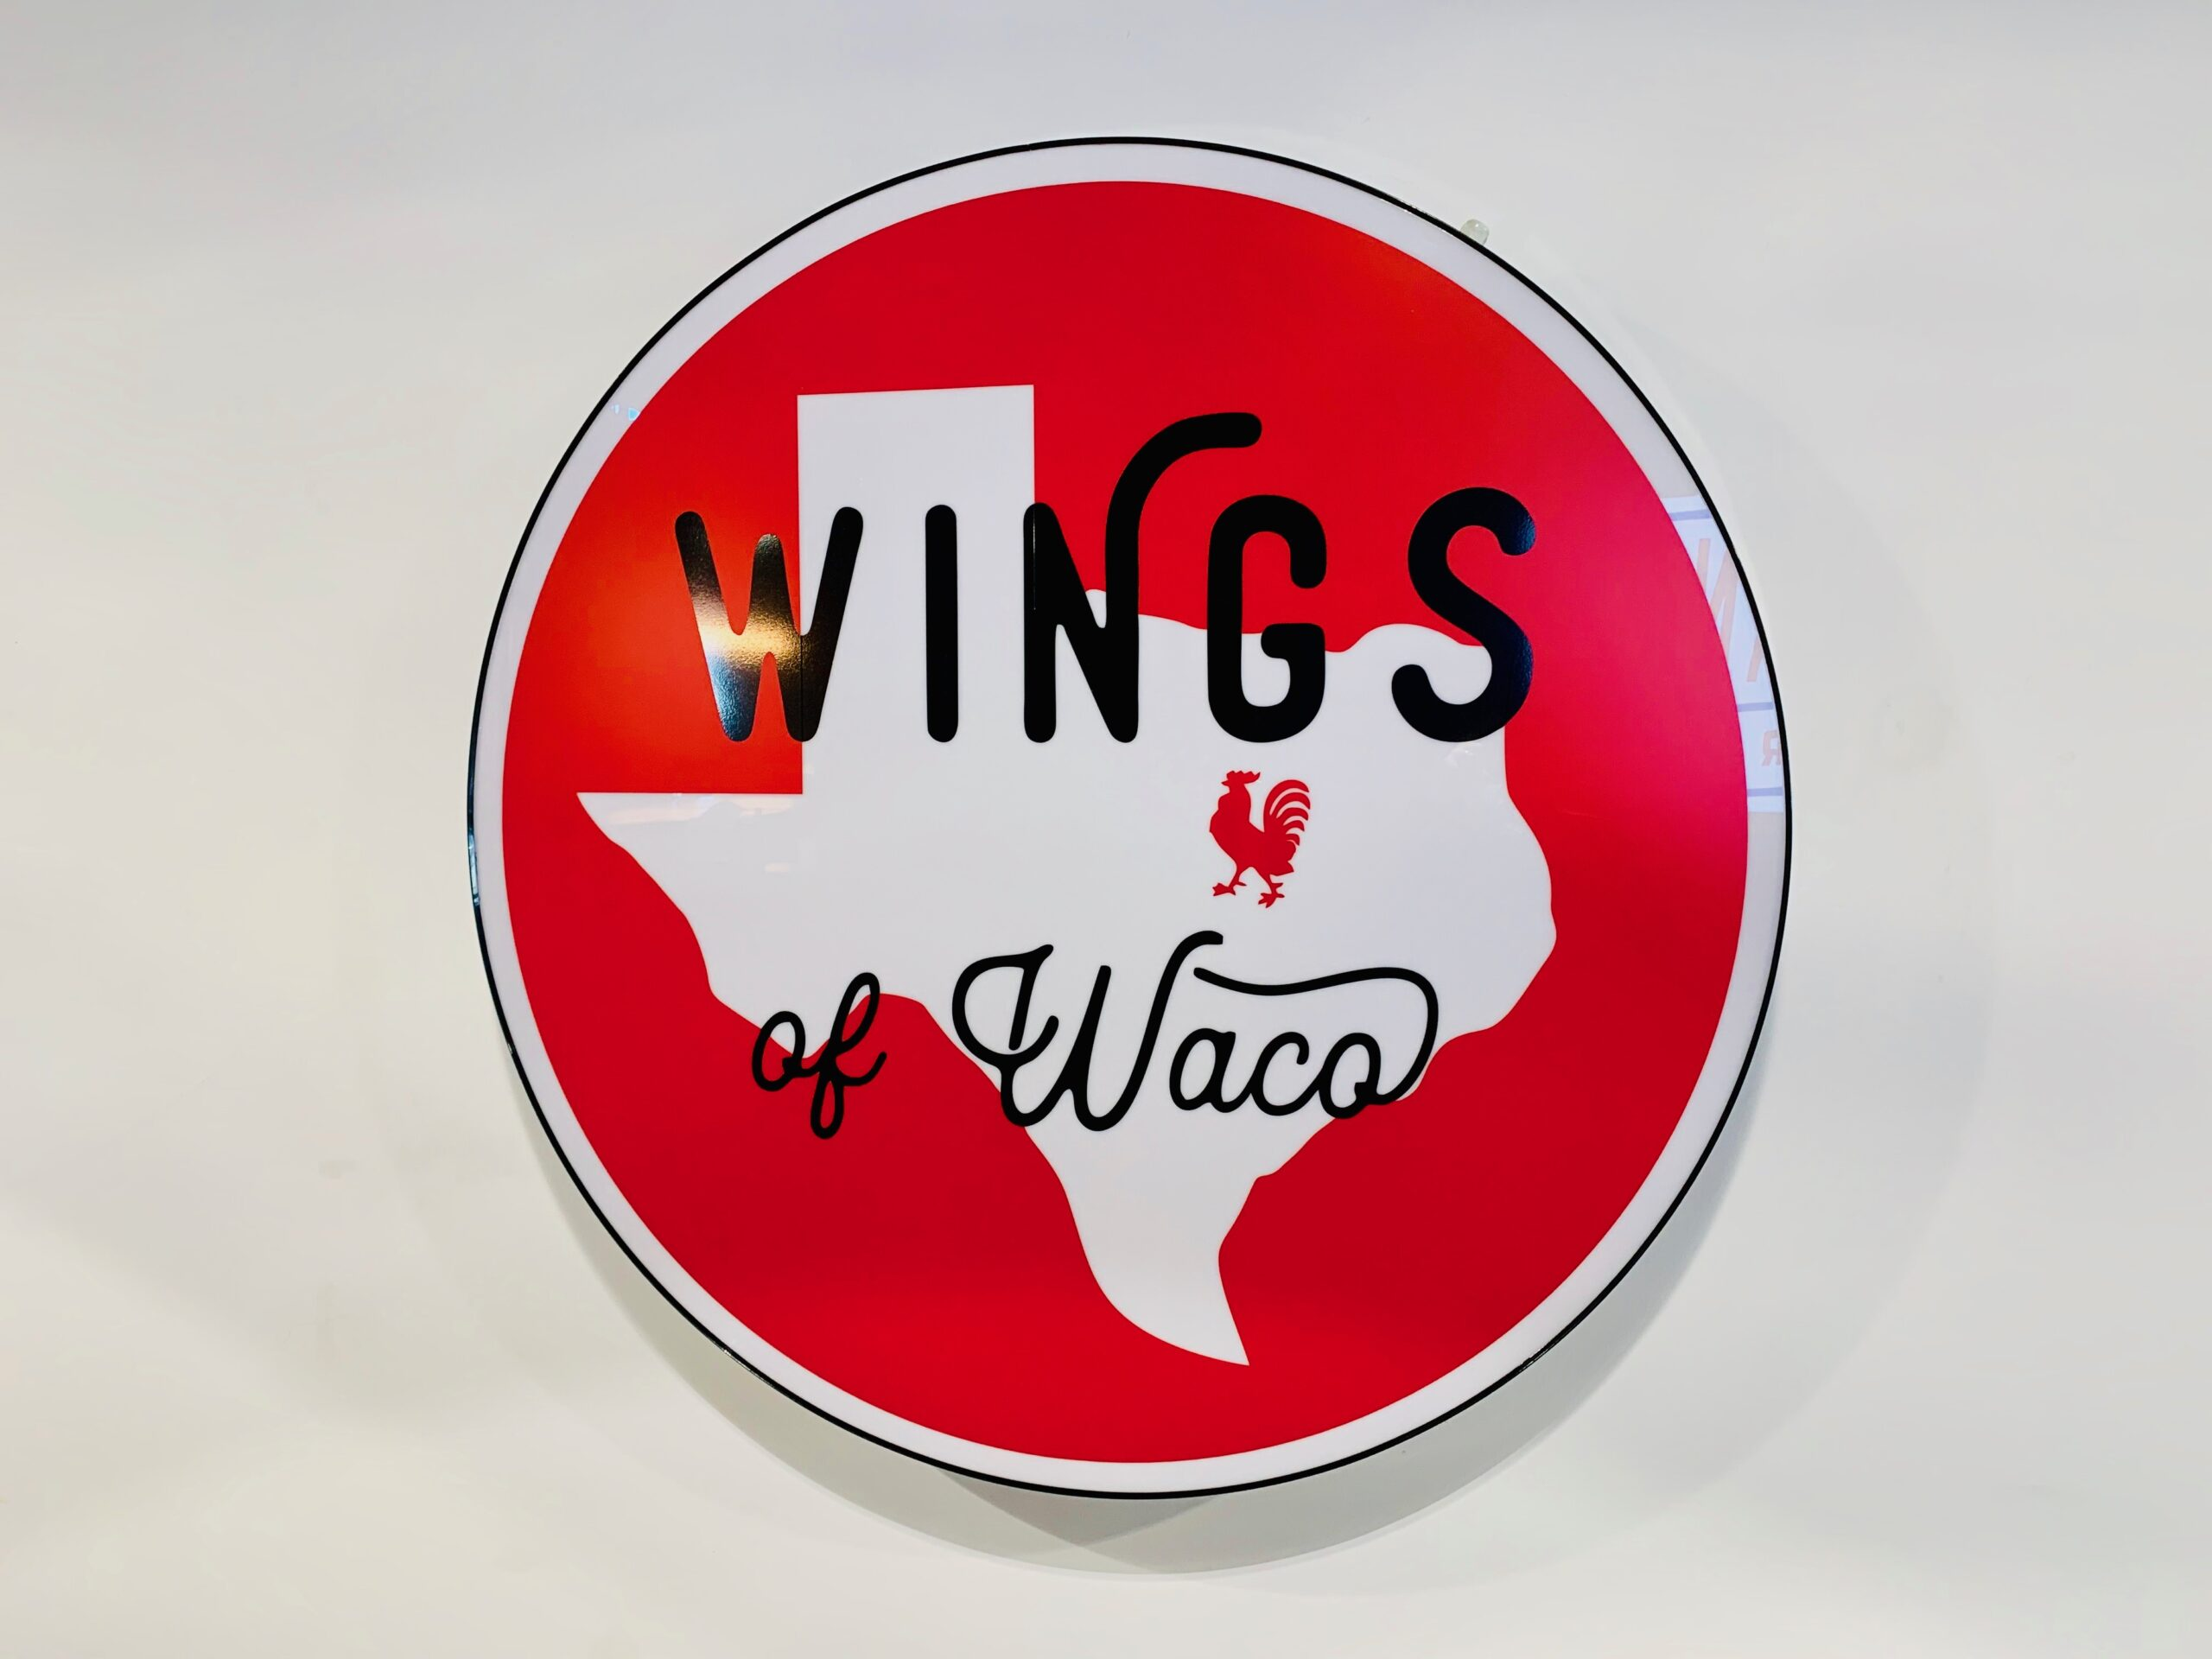 Wings of Waco Now Open!